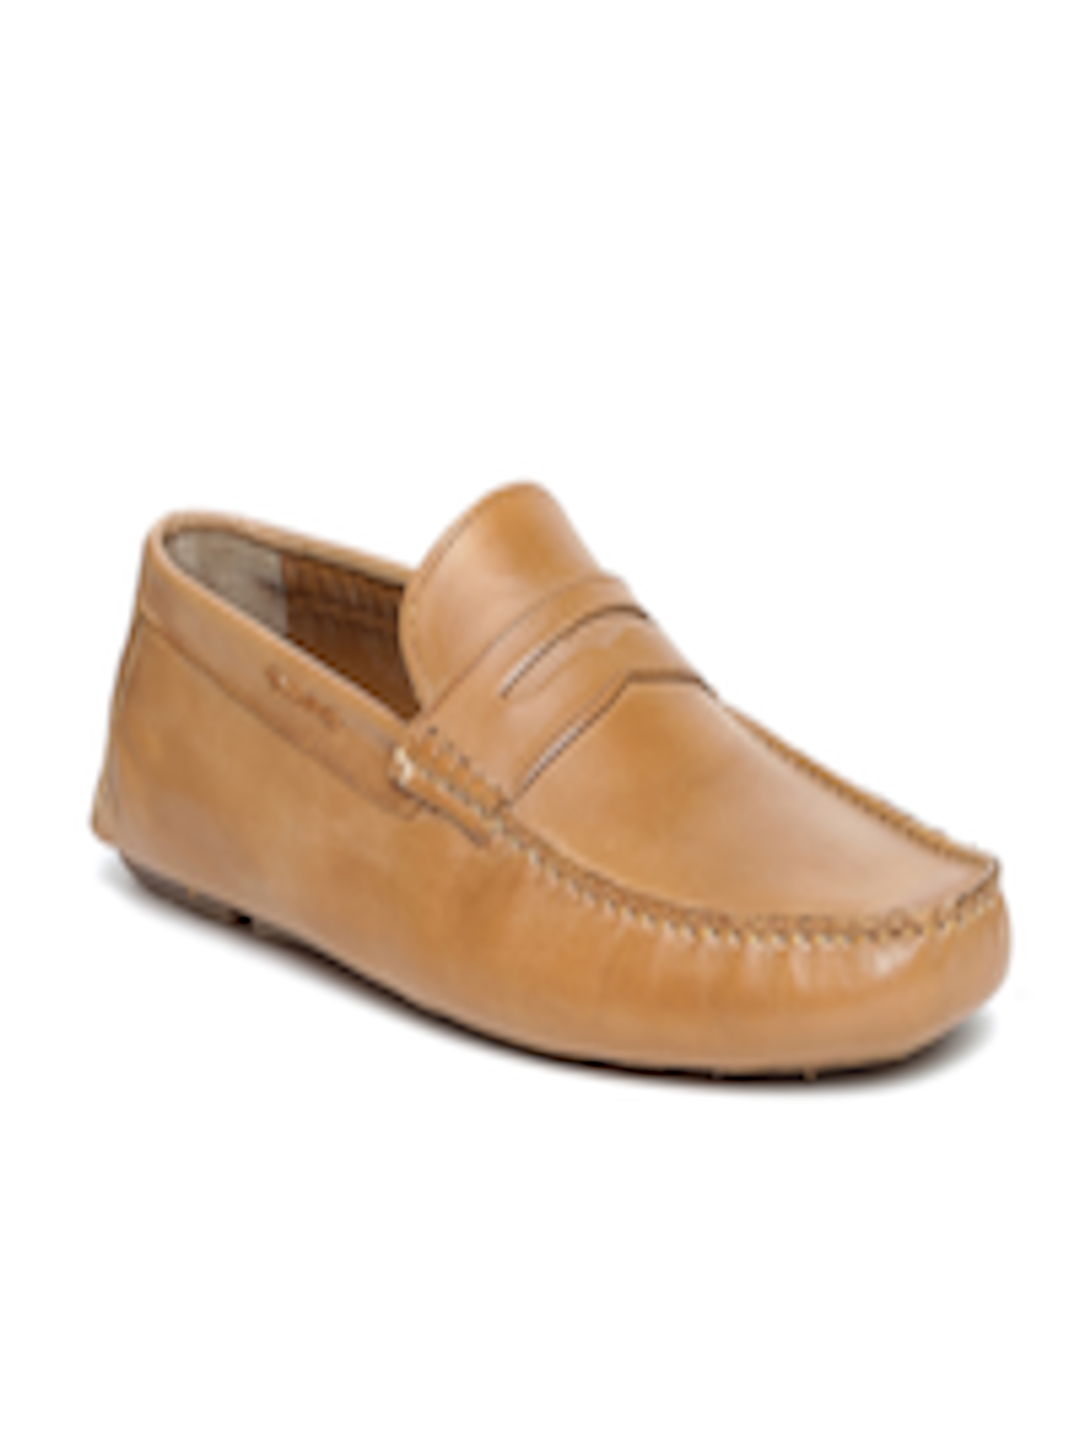 Buy Bata Men Tan Brown Leather Loafers Casual Shoes For